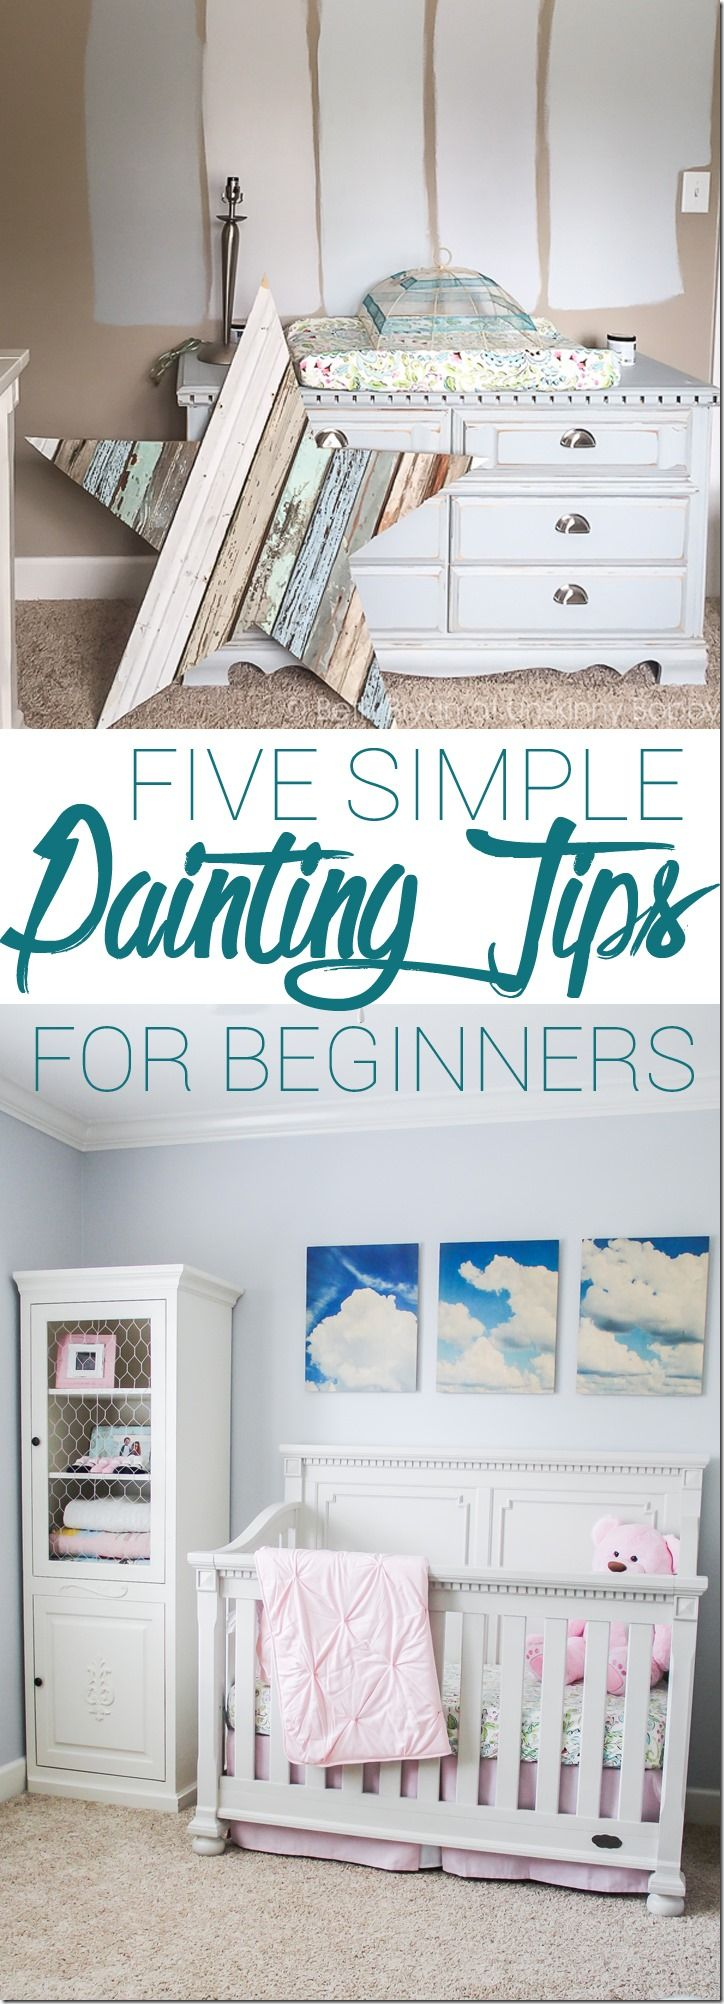 Uncategorized Interior Painting Tips For Beginners 98 best paint choosing is hard images on pinterest colors transforming a nursery with 5 simple painting tips for beginners unskinnyboppy com